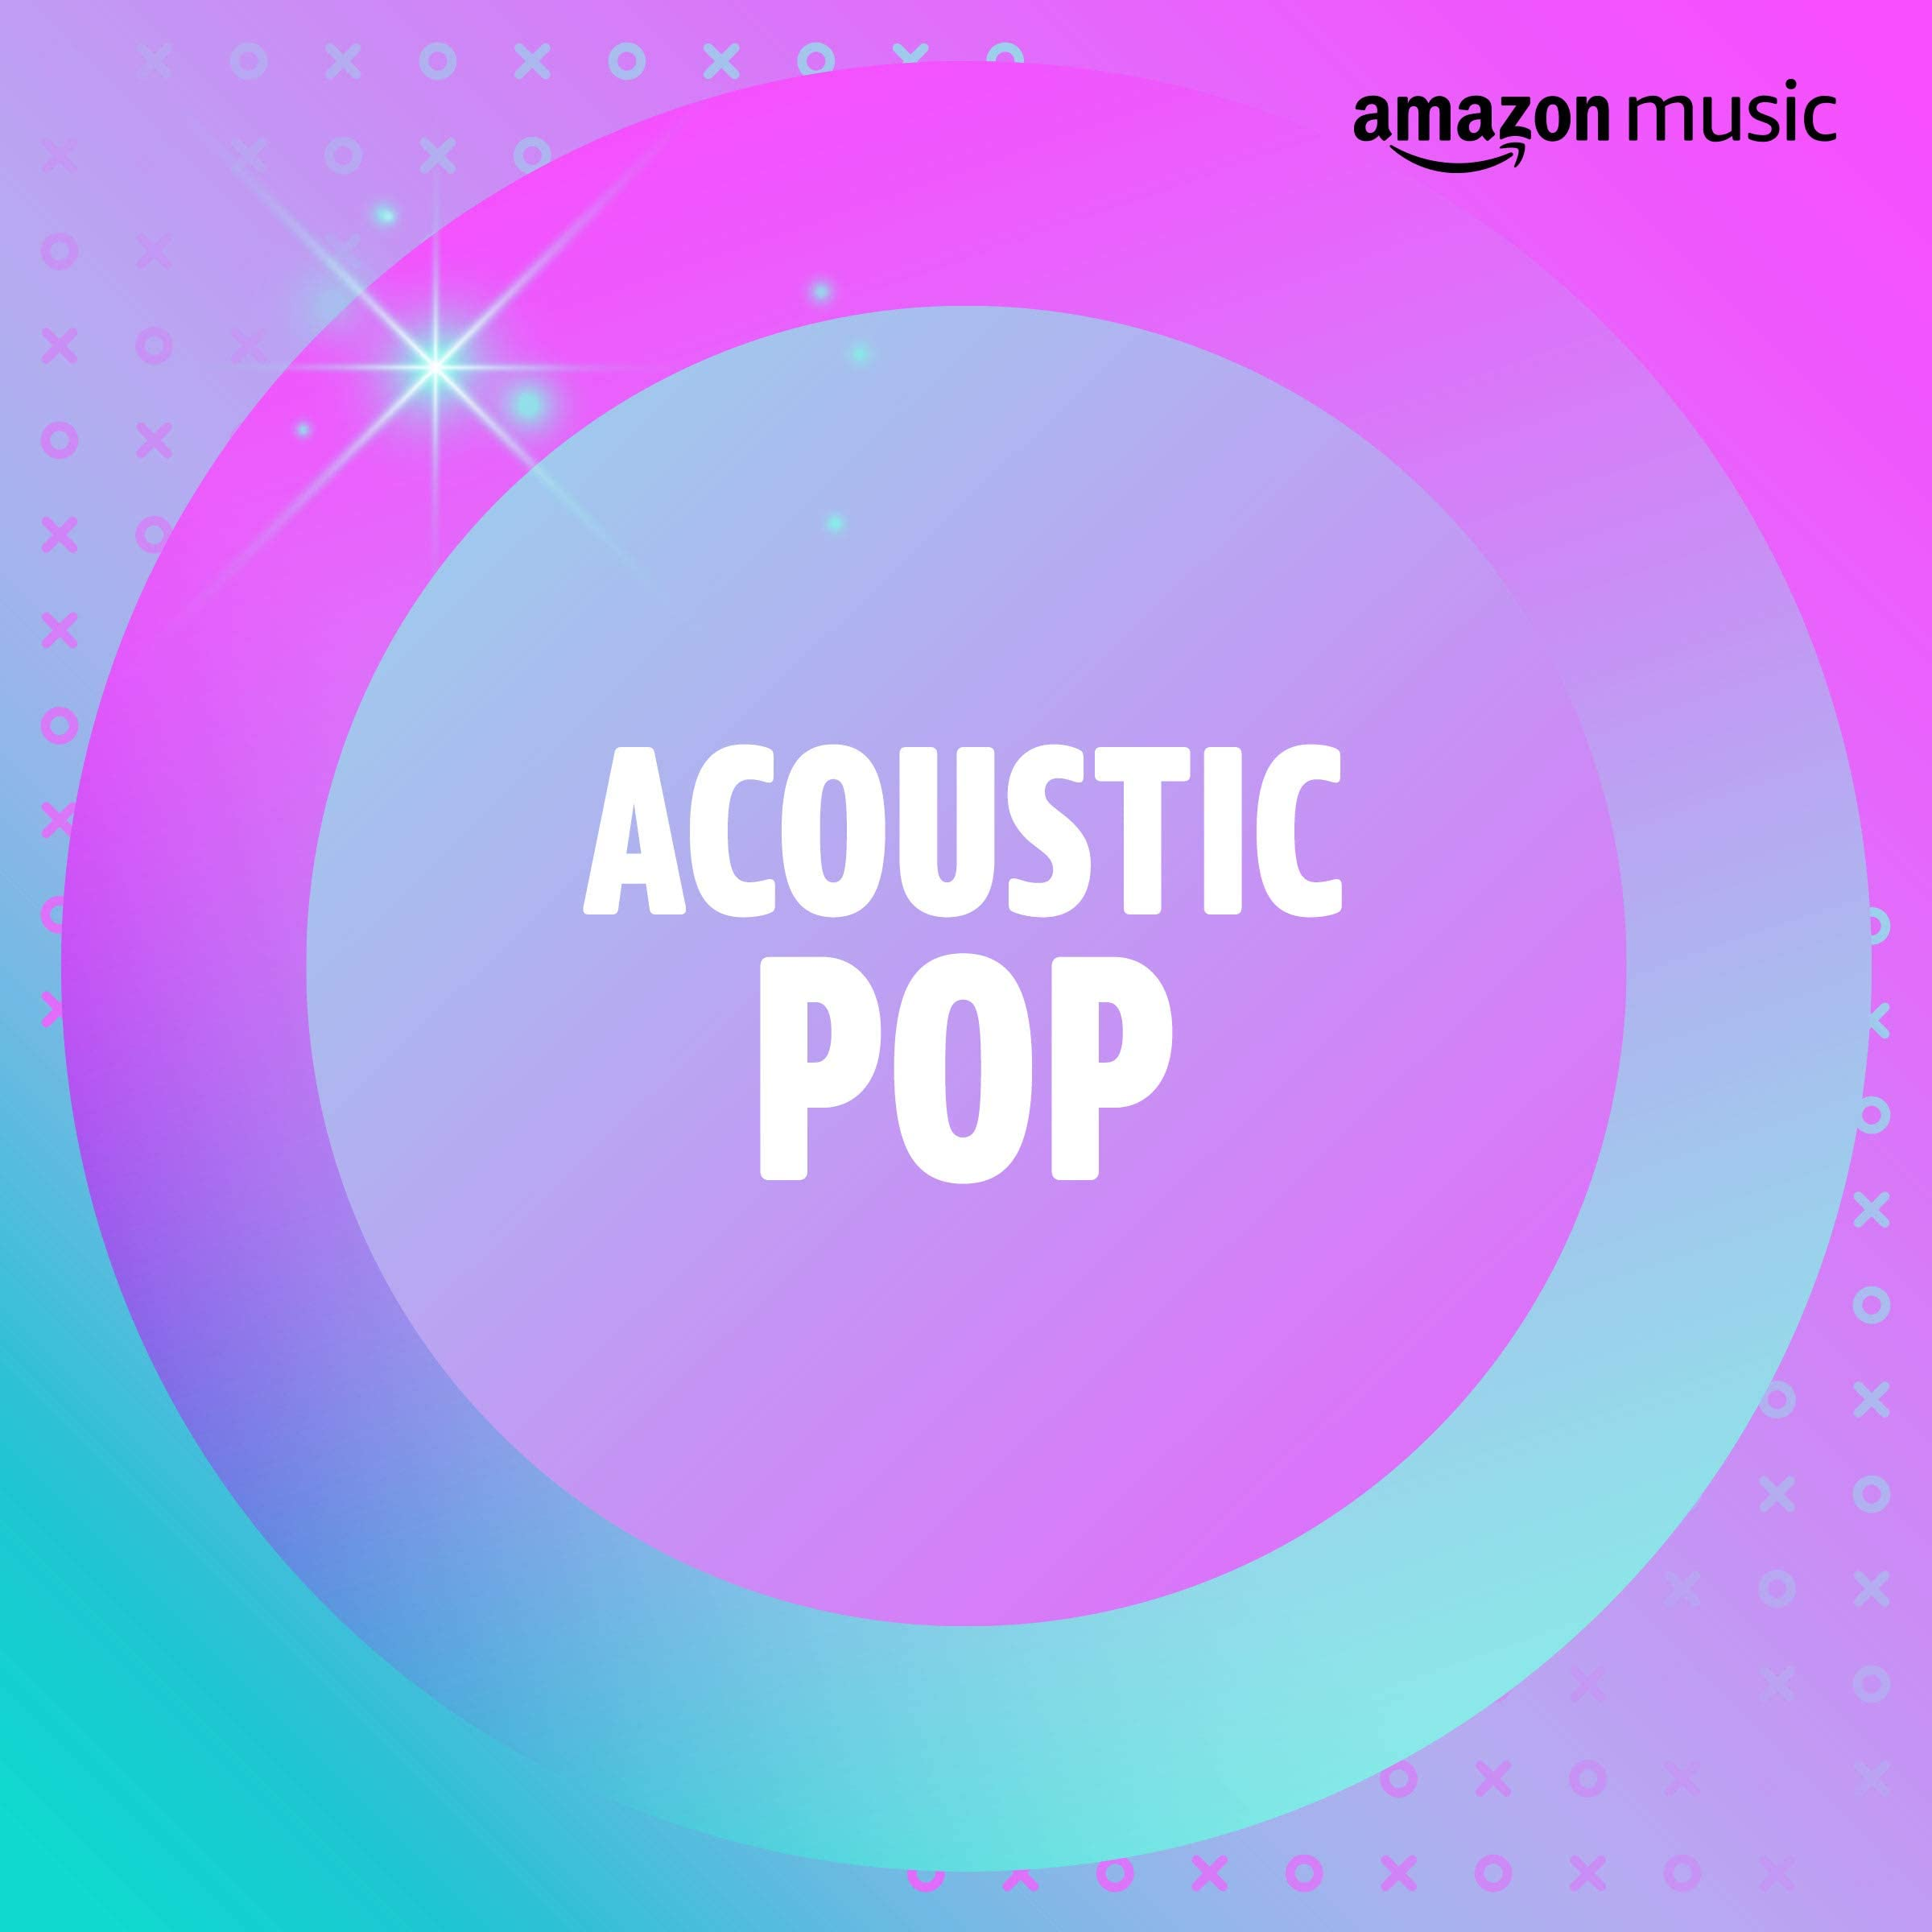 Pop acoustique